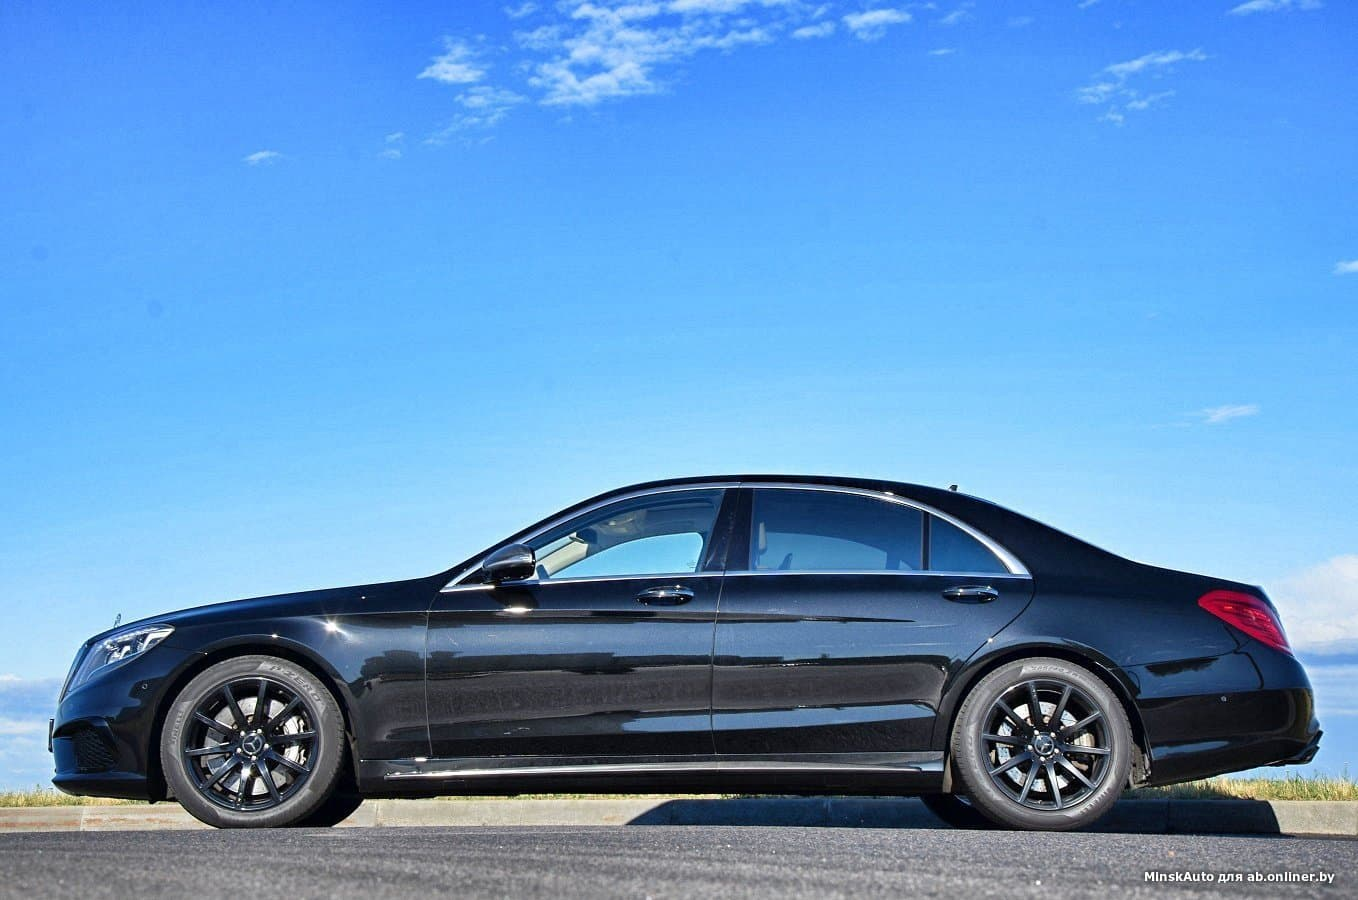 Mercedes-Benz S63 AMG W222 Long Carbon Night 4 MATIC